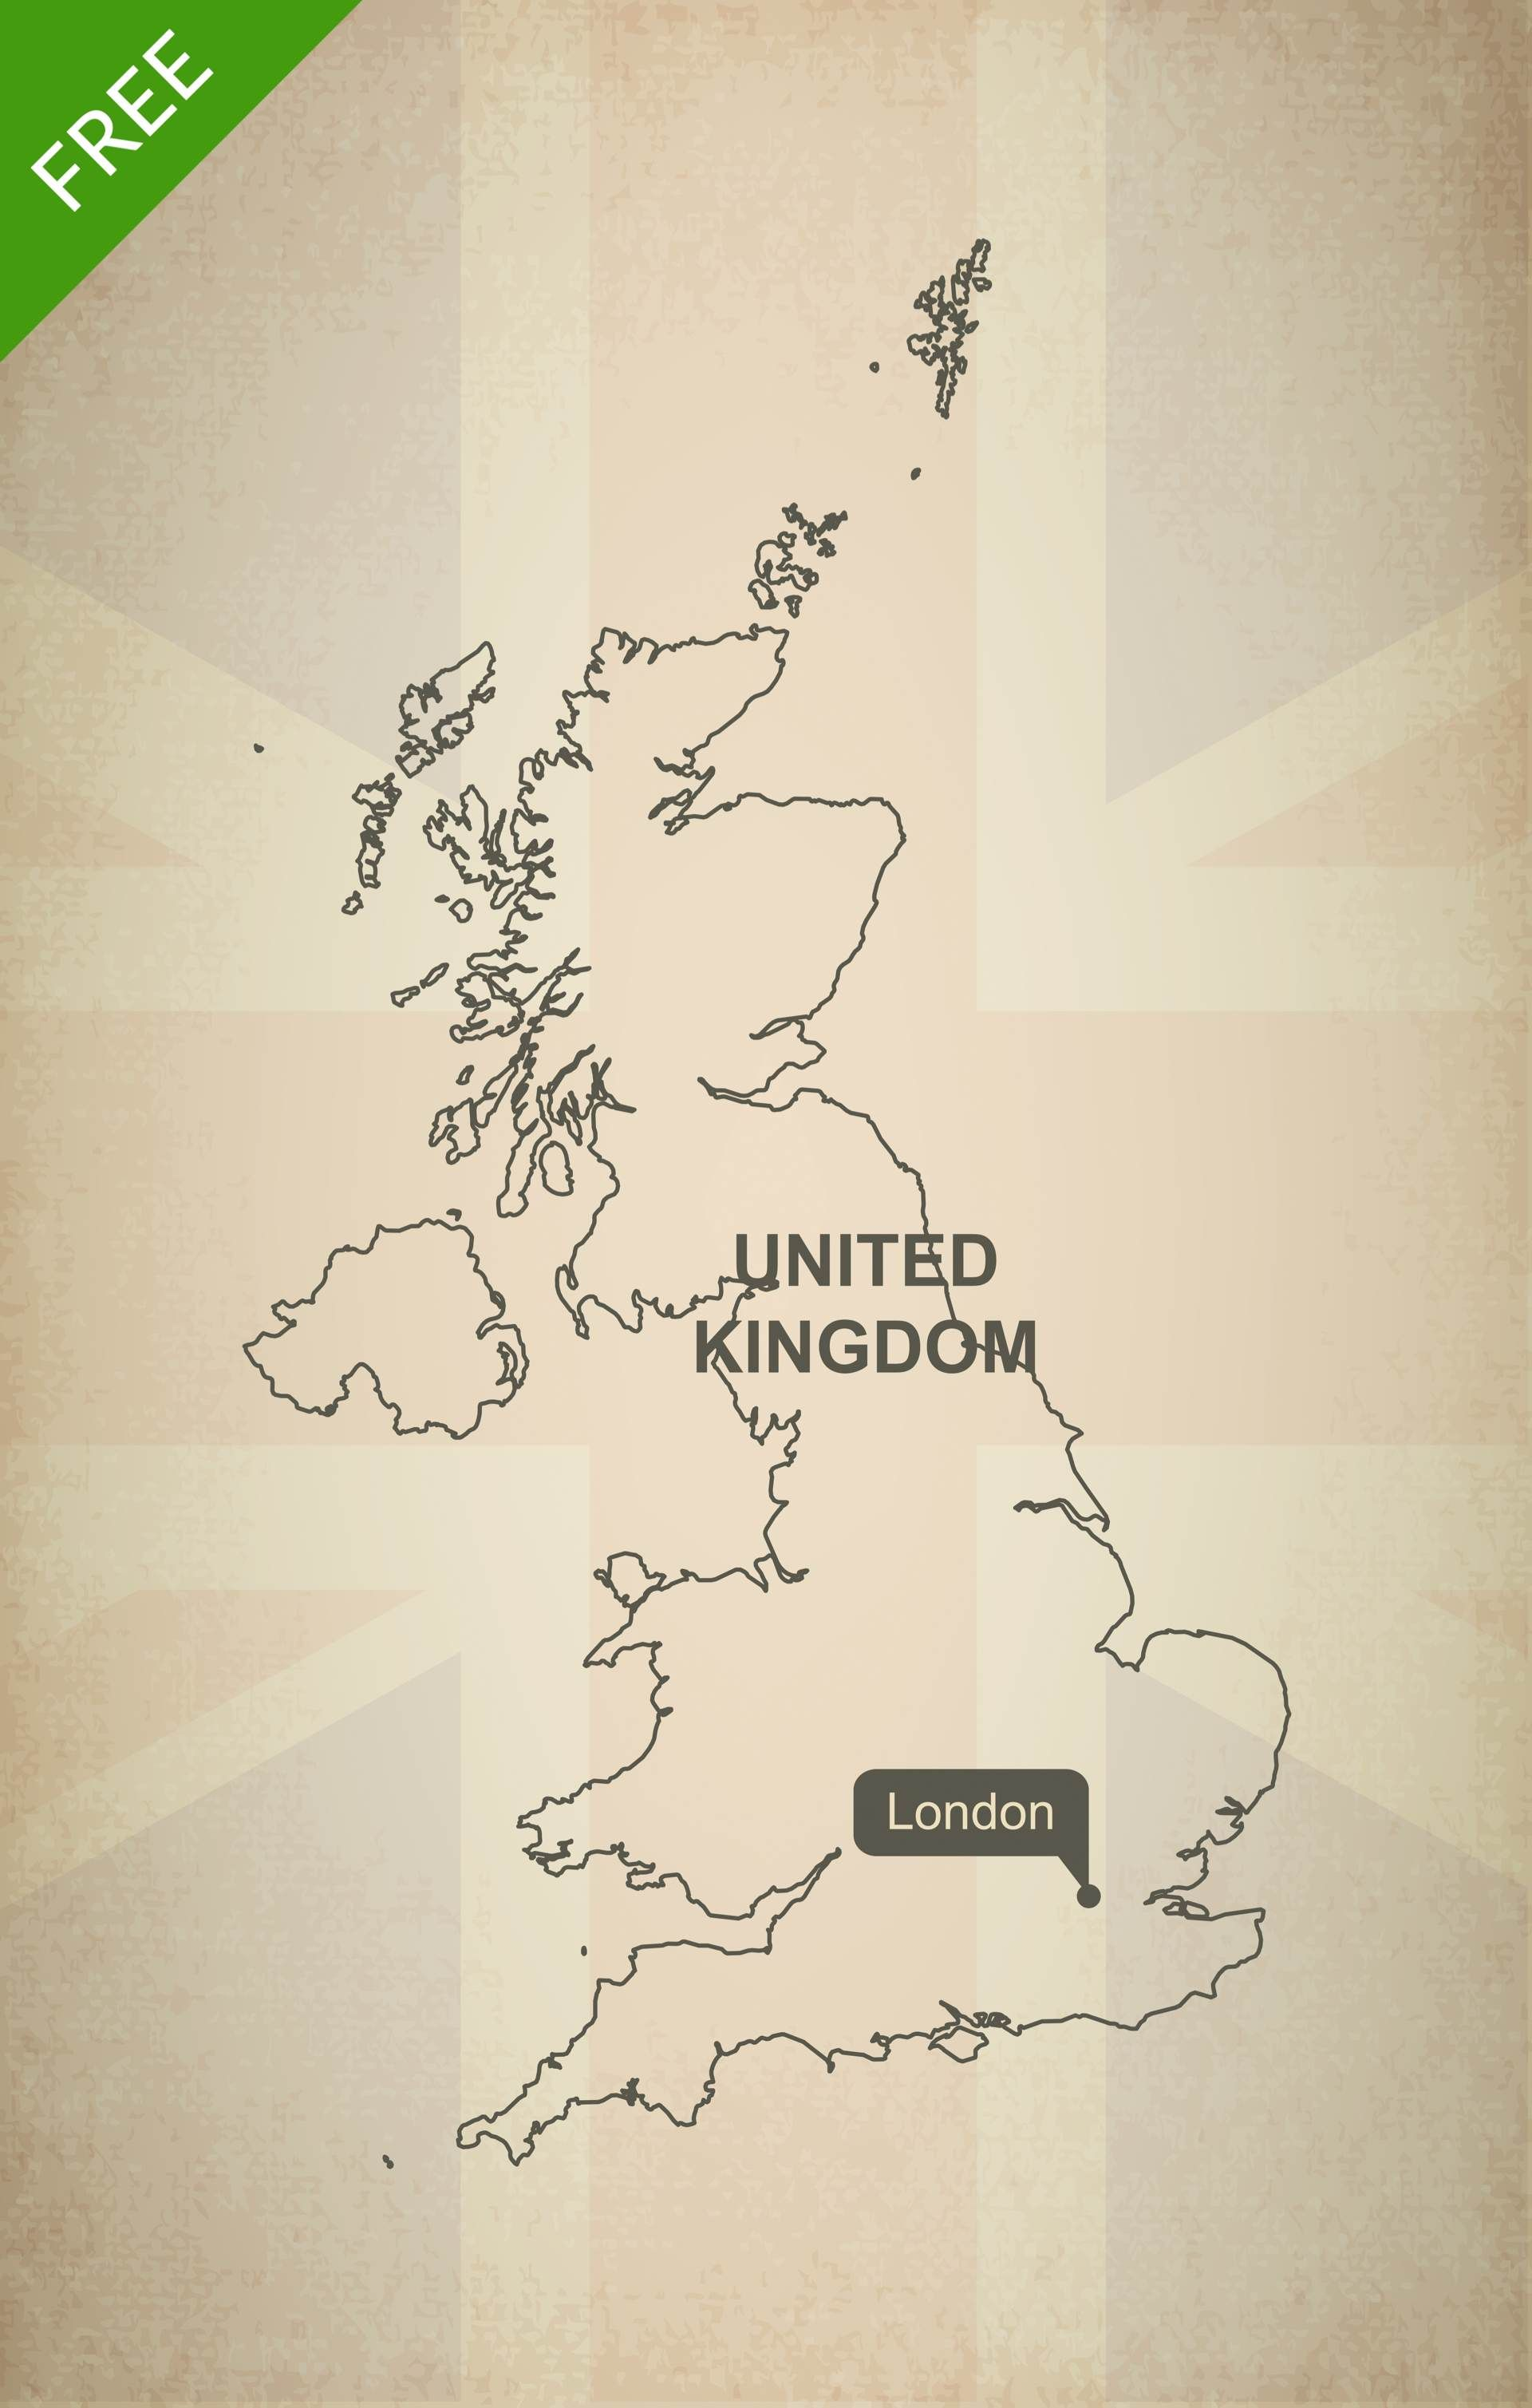 Free vector map of united kingdom outline free download of united kingdom outline vector map royalty free high resolution jpeg and vector gumiabroncs Choice Image